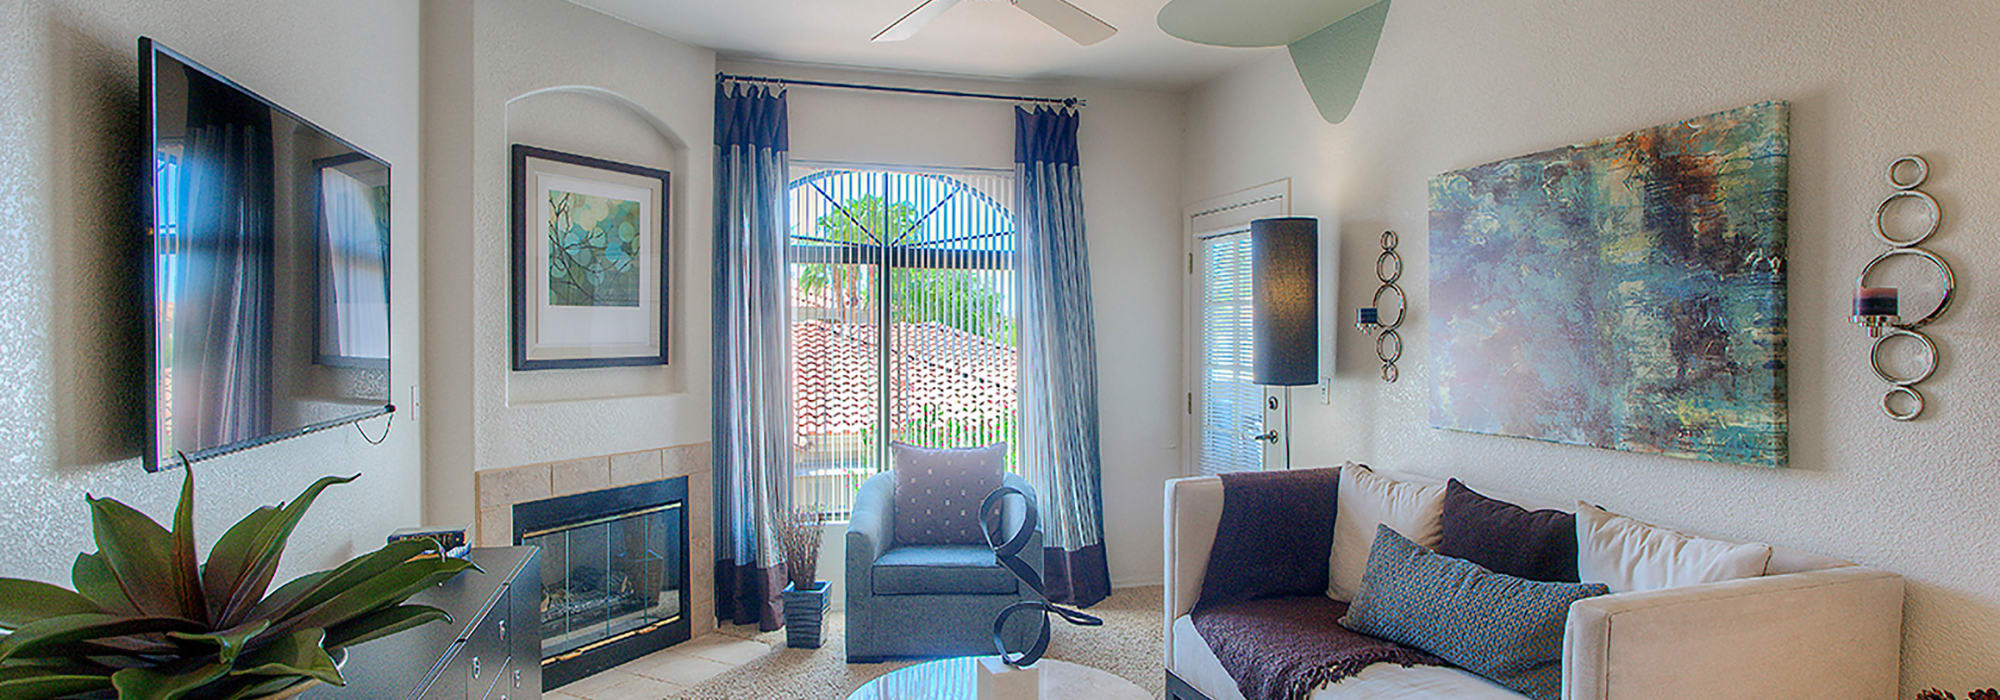 Living room with a fireplace in a model home at San Pedregal in Phoenix, Arizona